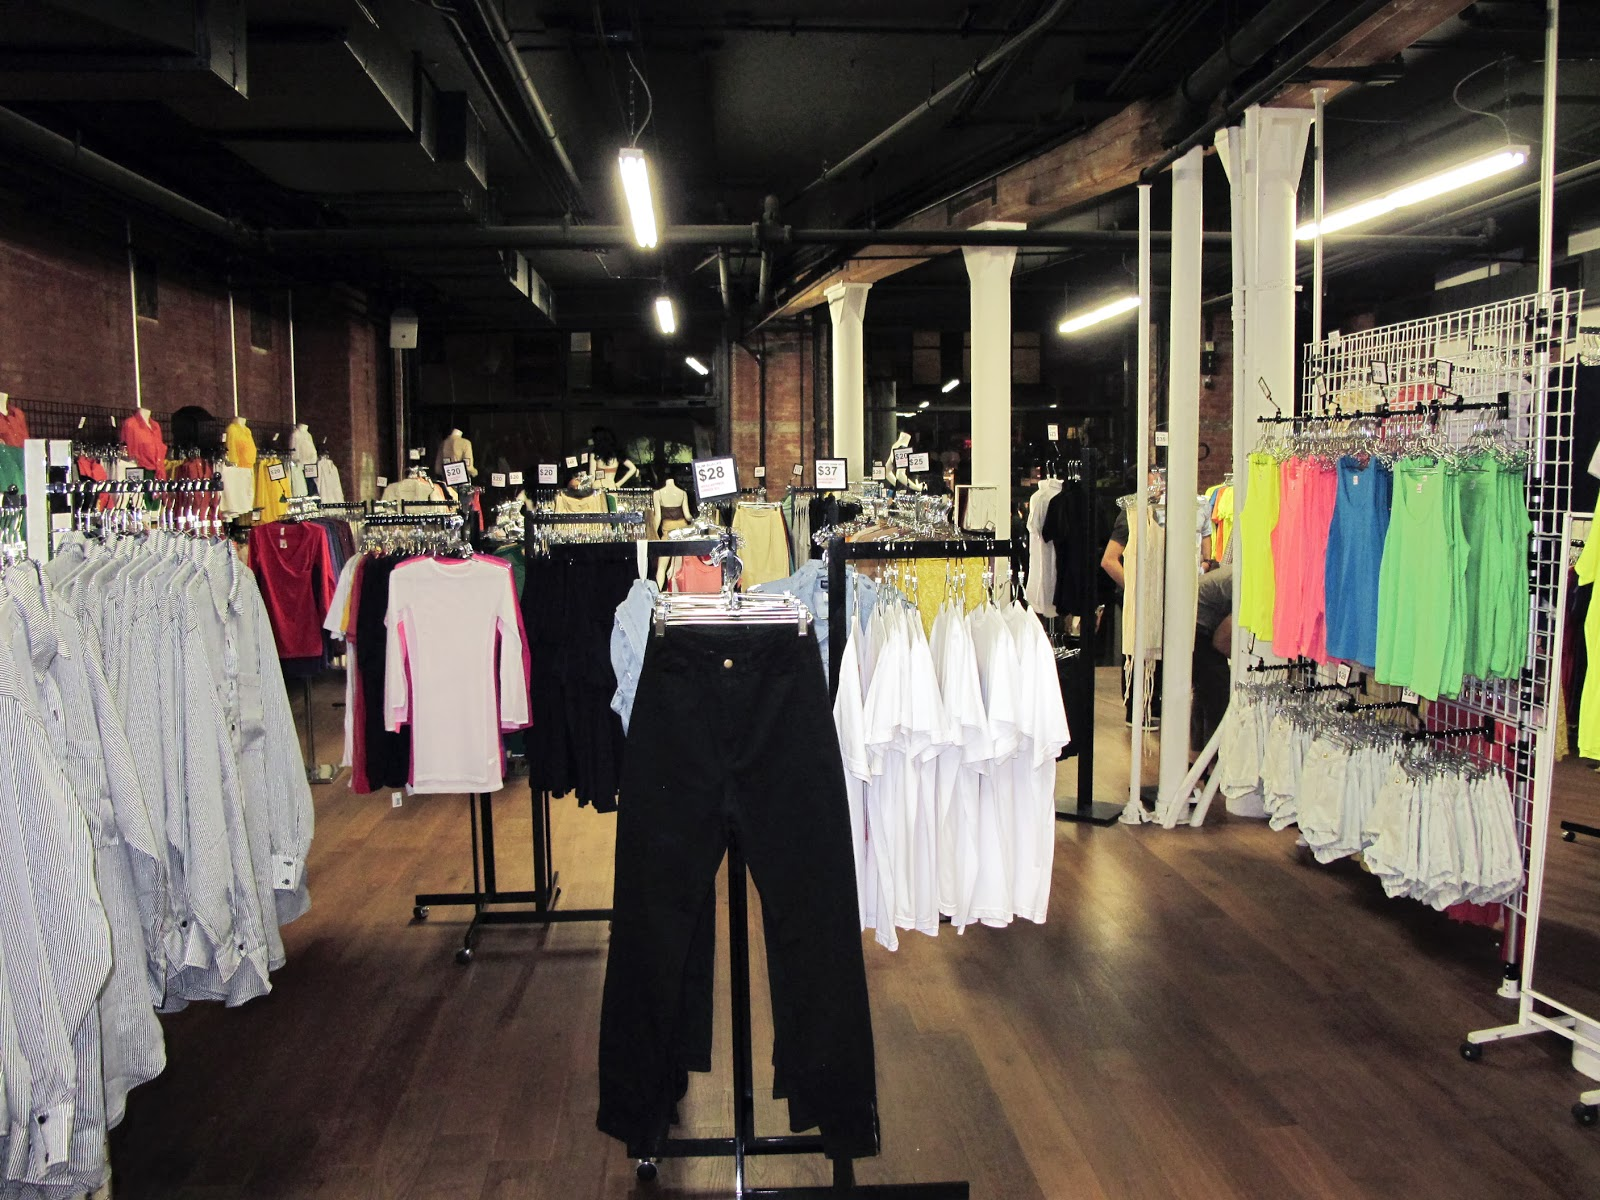 American Apparel — SoHo is located in the SoHo neighborhood of Manhattan. The historic SoHo neighborhood (